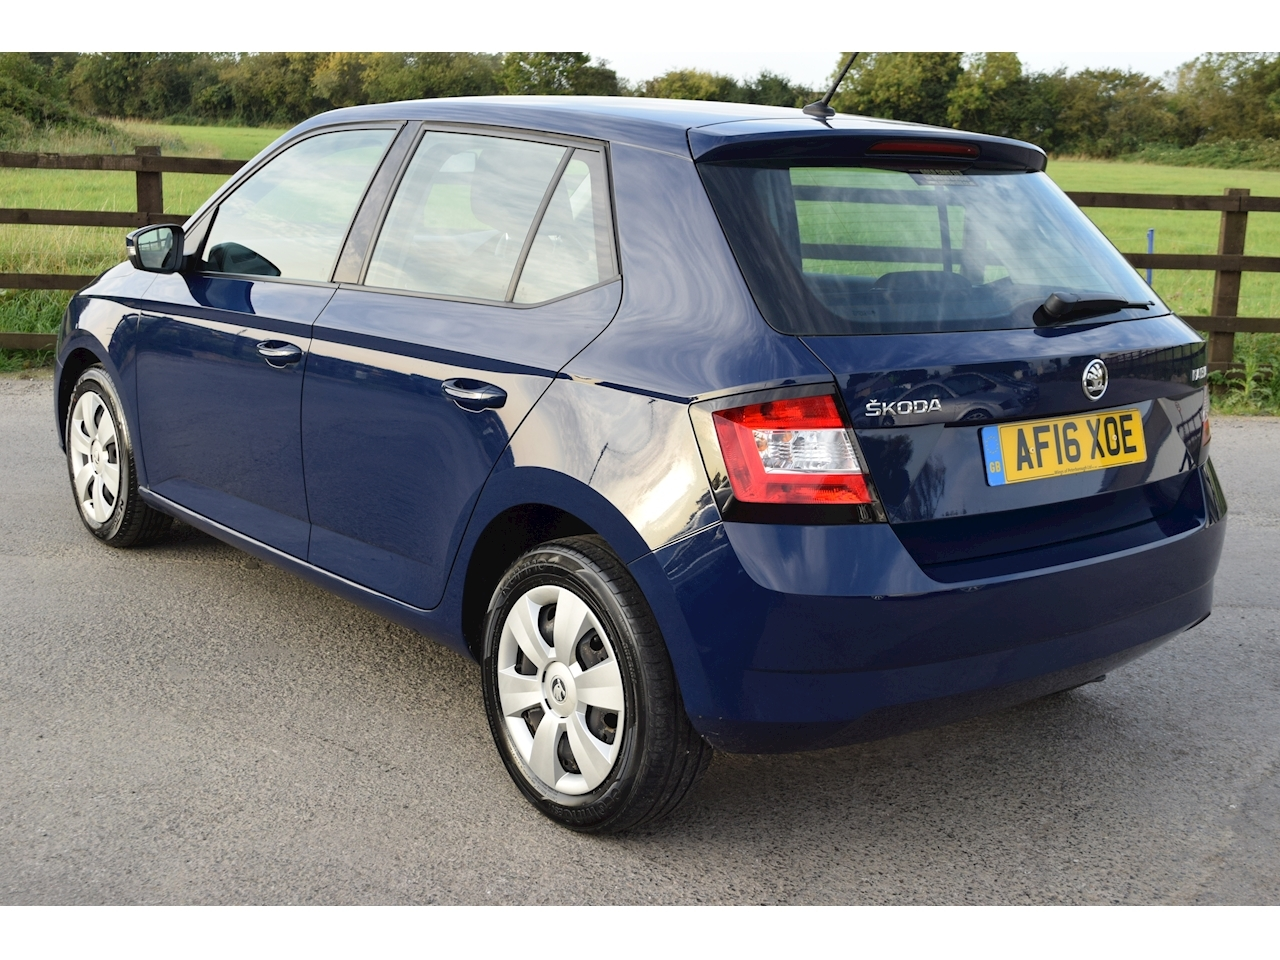 SKODA Fabia S Hatchback 1.0 Manual Petrol